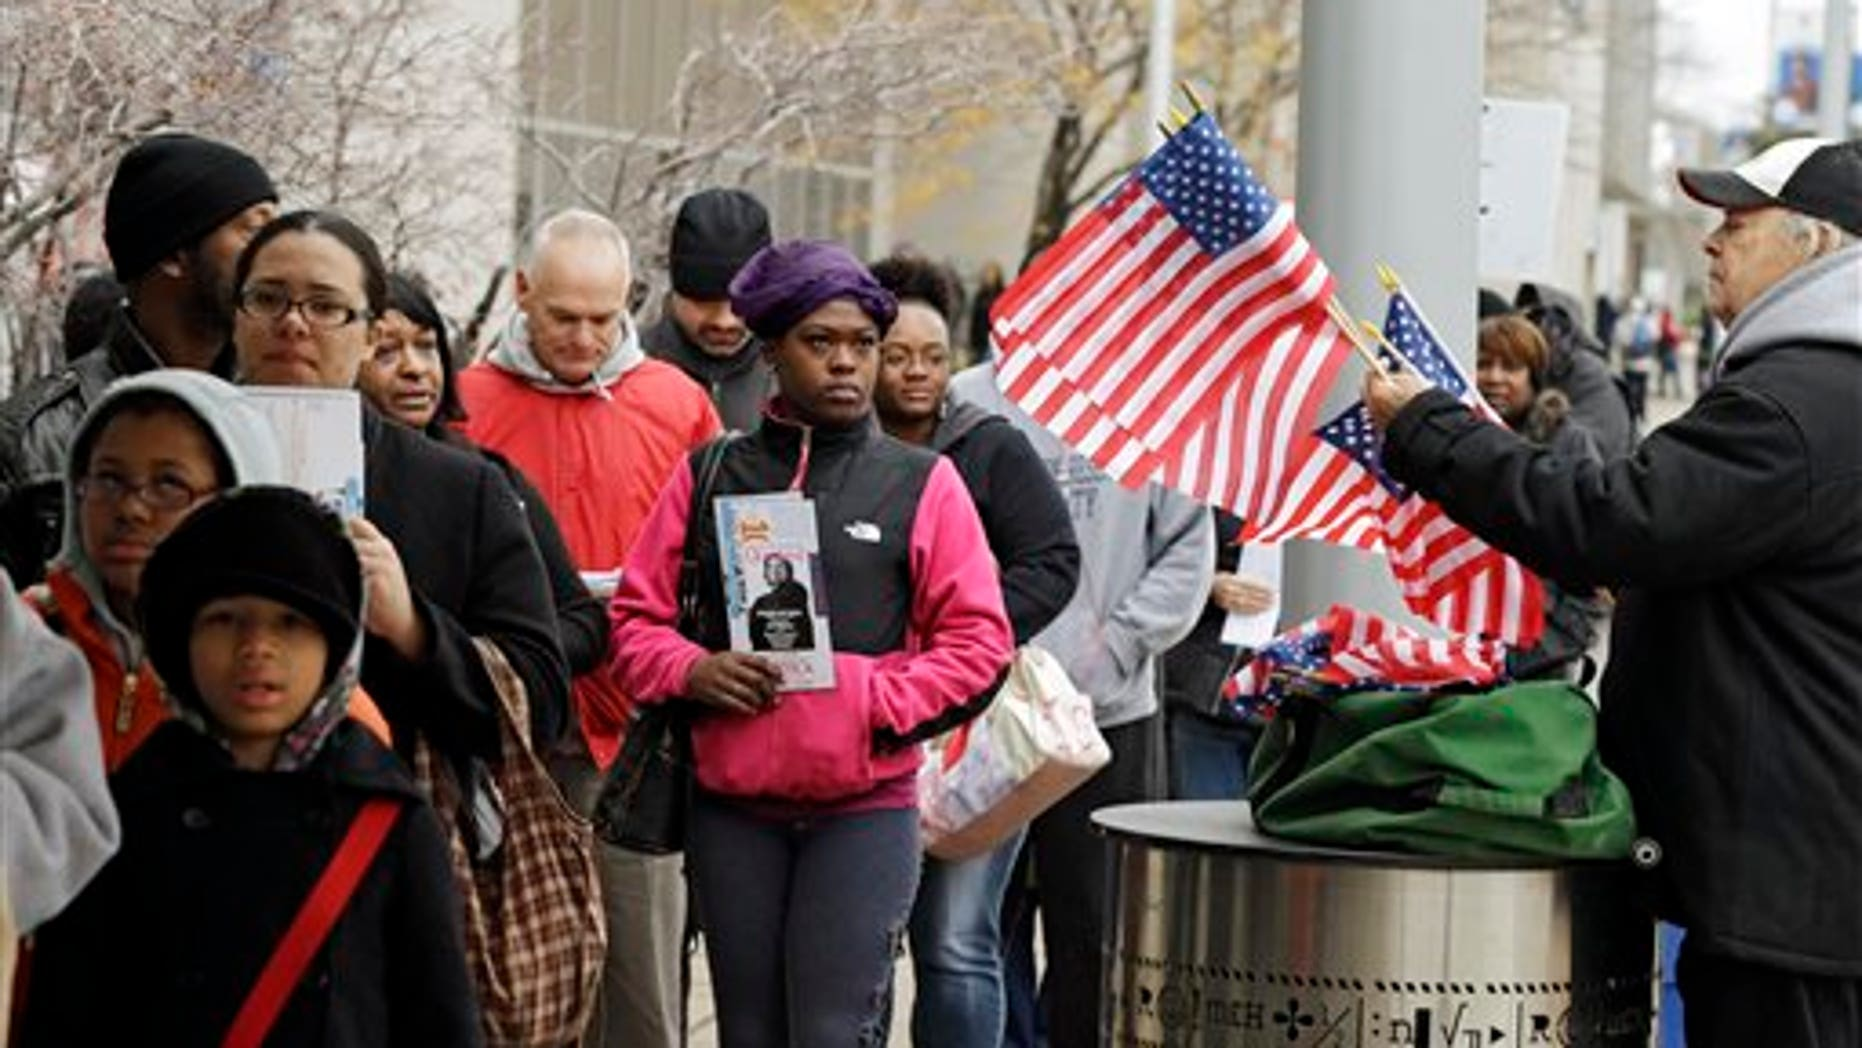 Voiters wait in line outside the Cuyahoga County Board of Elections in Cleveland on the final day of early voting Monday, Nov. 5, 2012. About 1.6 million people have voted early in Ohio. (AP Photo/Mark Duncan)